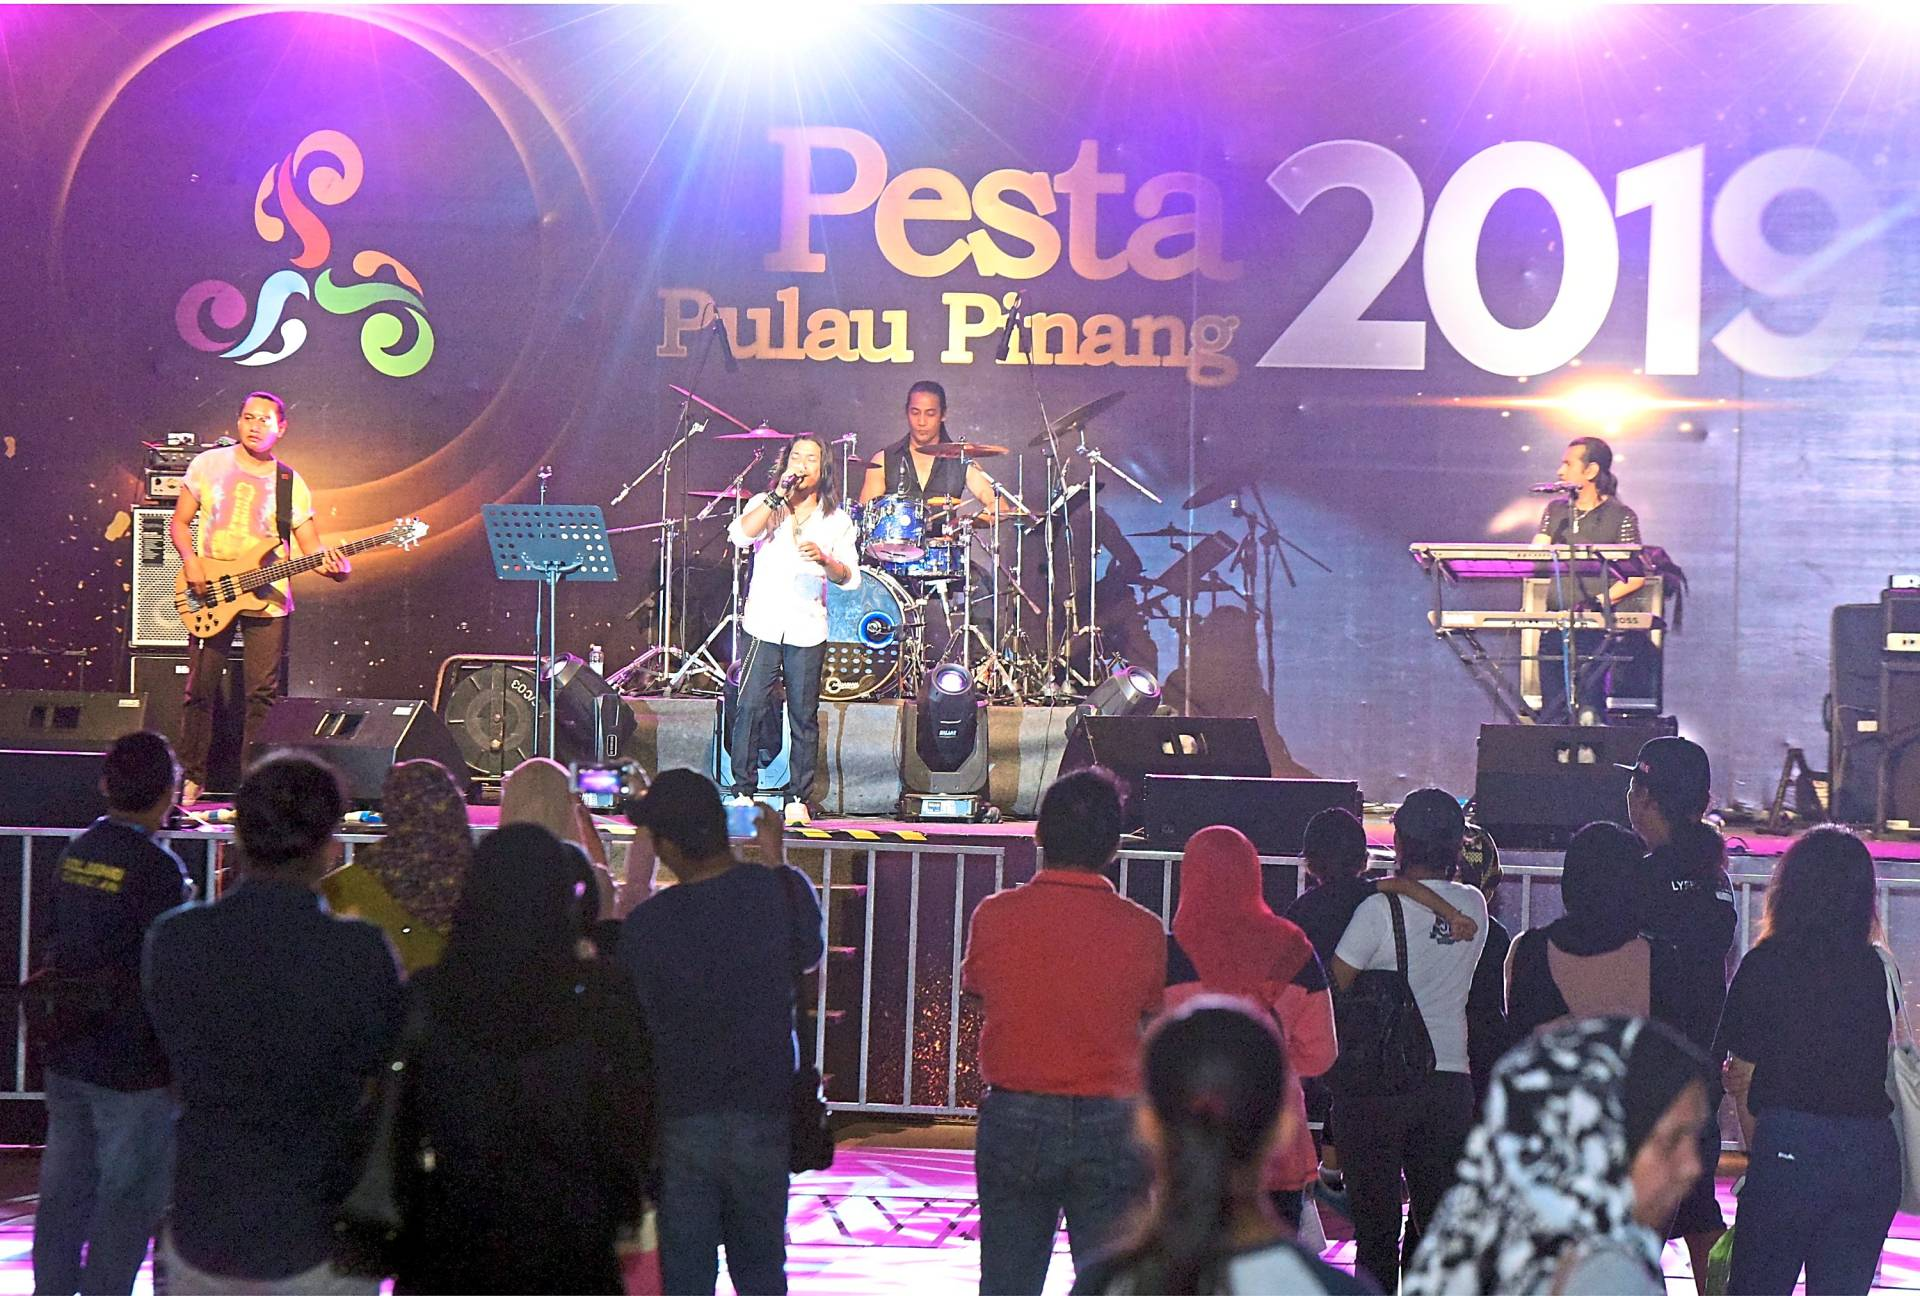 A local band performing on stage at the pesta site.